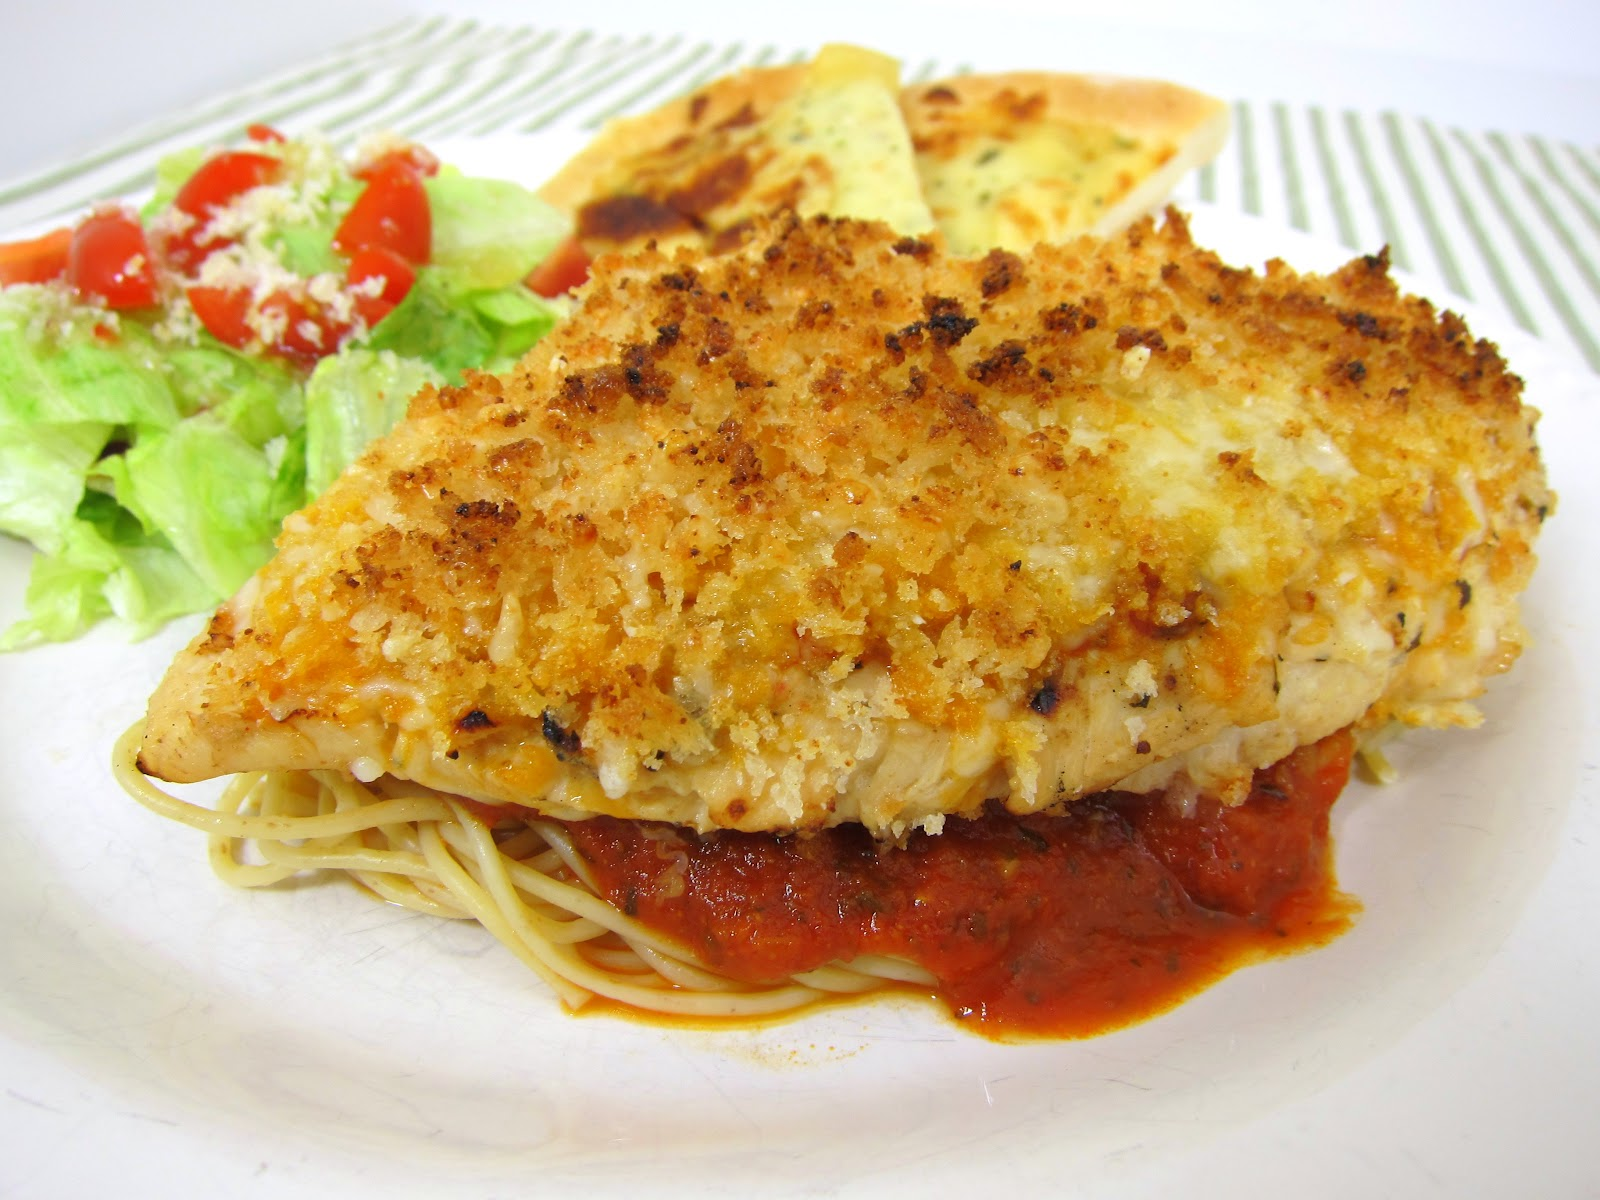 Grilled Chicken Parmesan - Plain Chicken